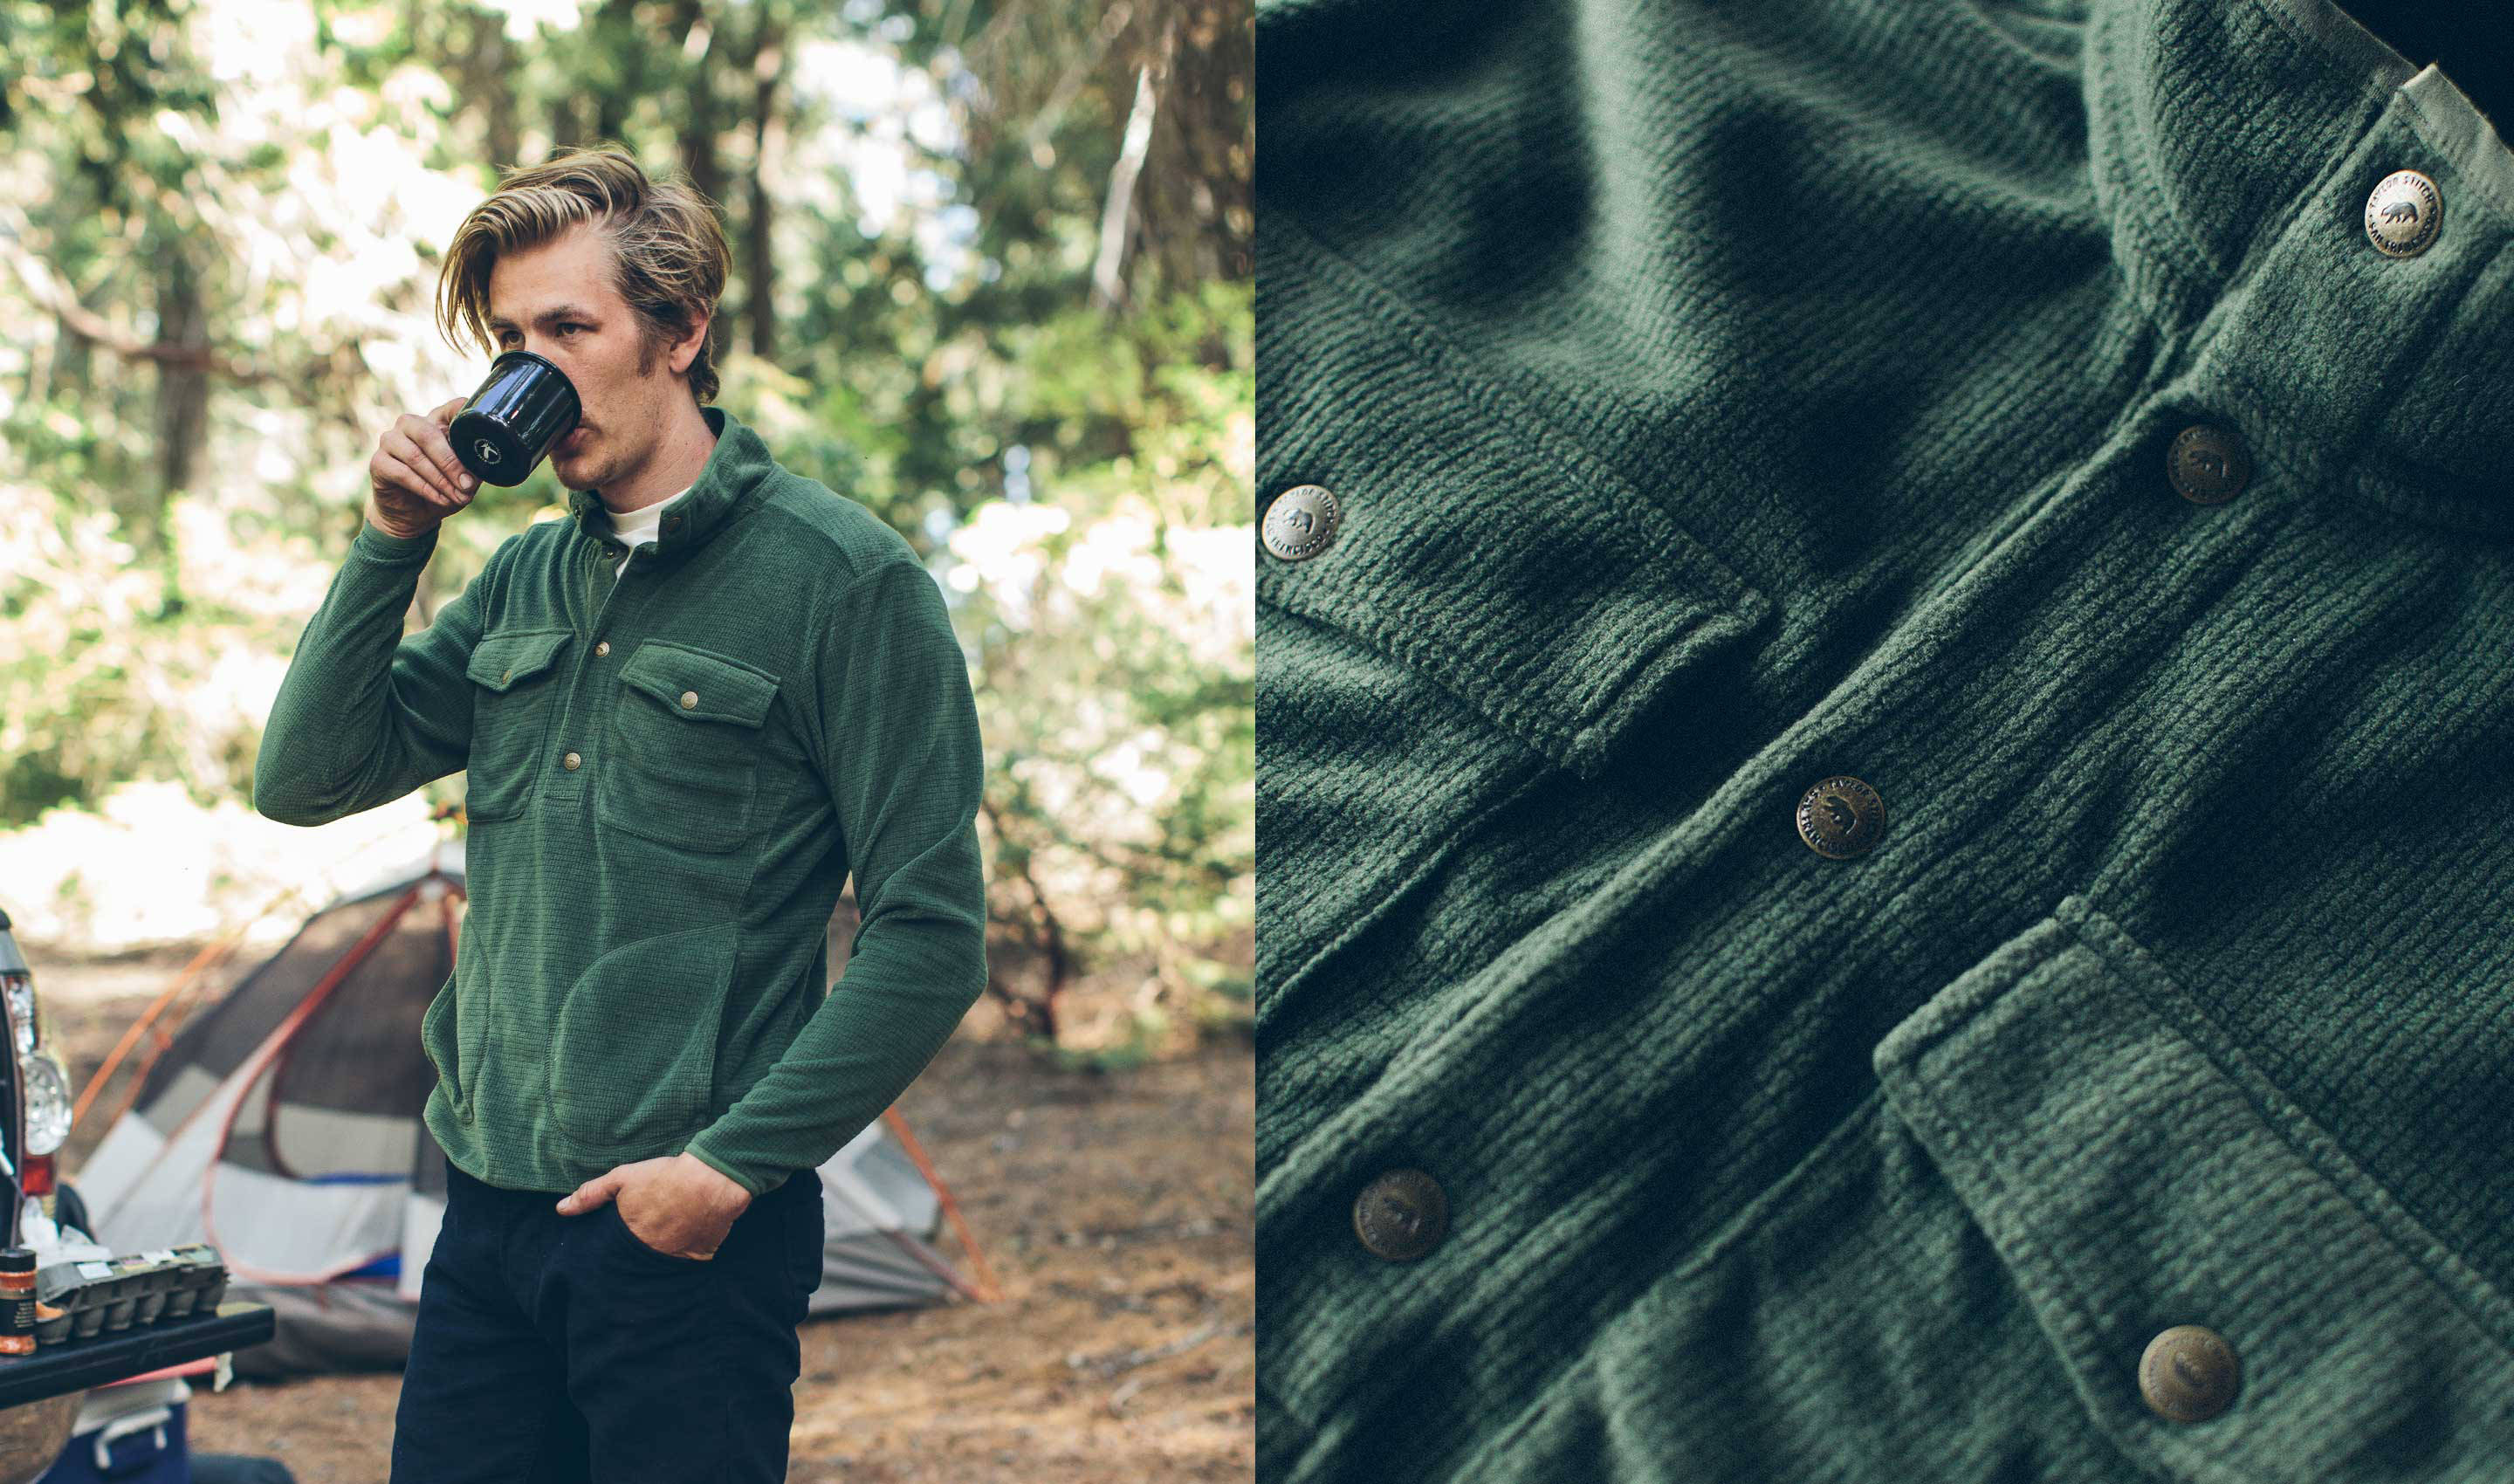 editorial_outdoors_01_packpullover_green_2880_02